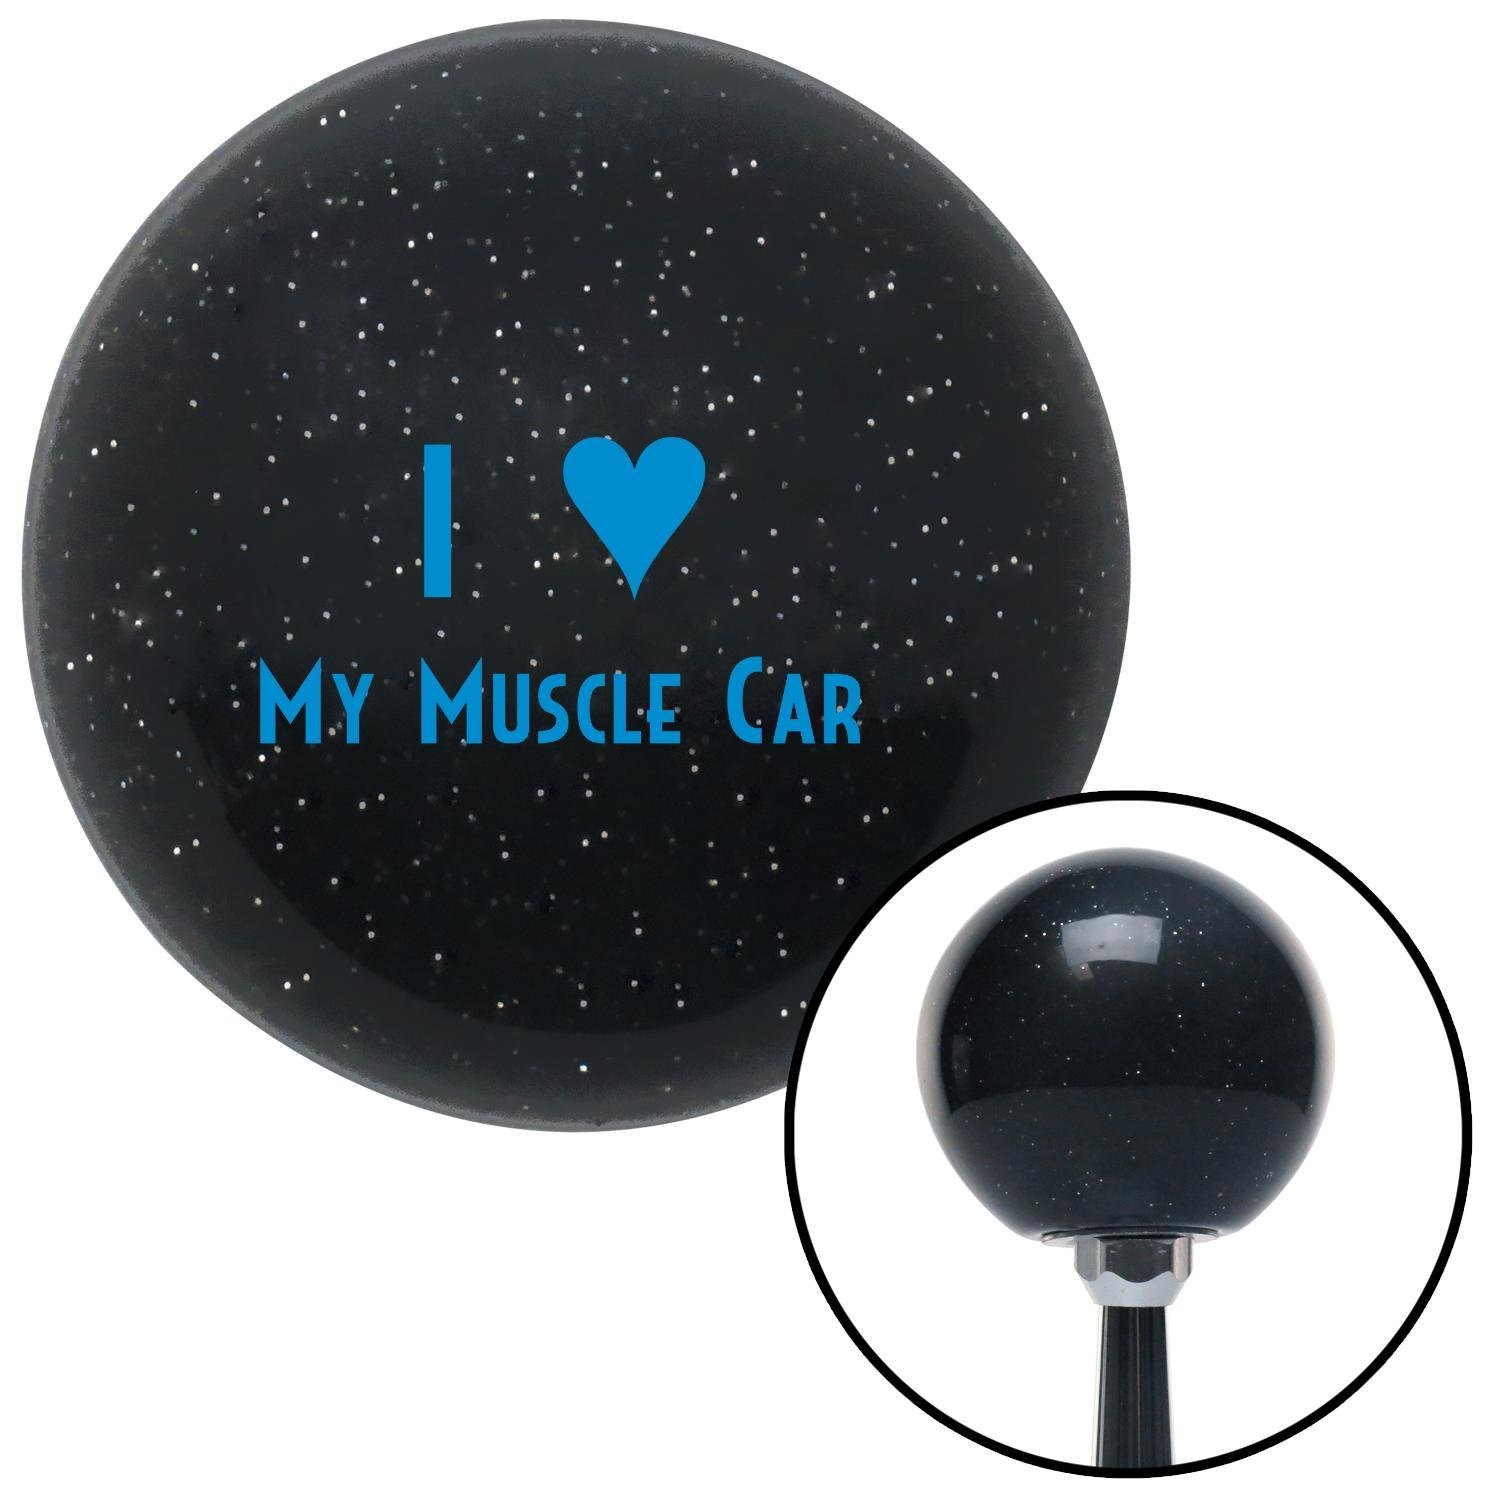 Blue I 3 My Muscle CAR American Shifter 71595 Black Metal Flake Shift Knob with M16 x 1.5 Insert